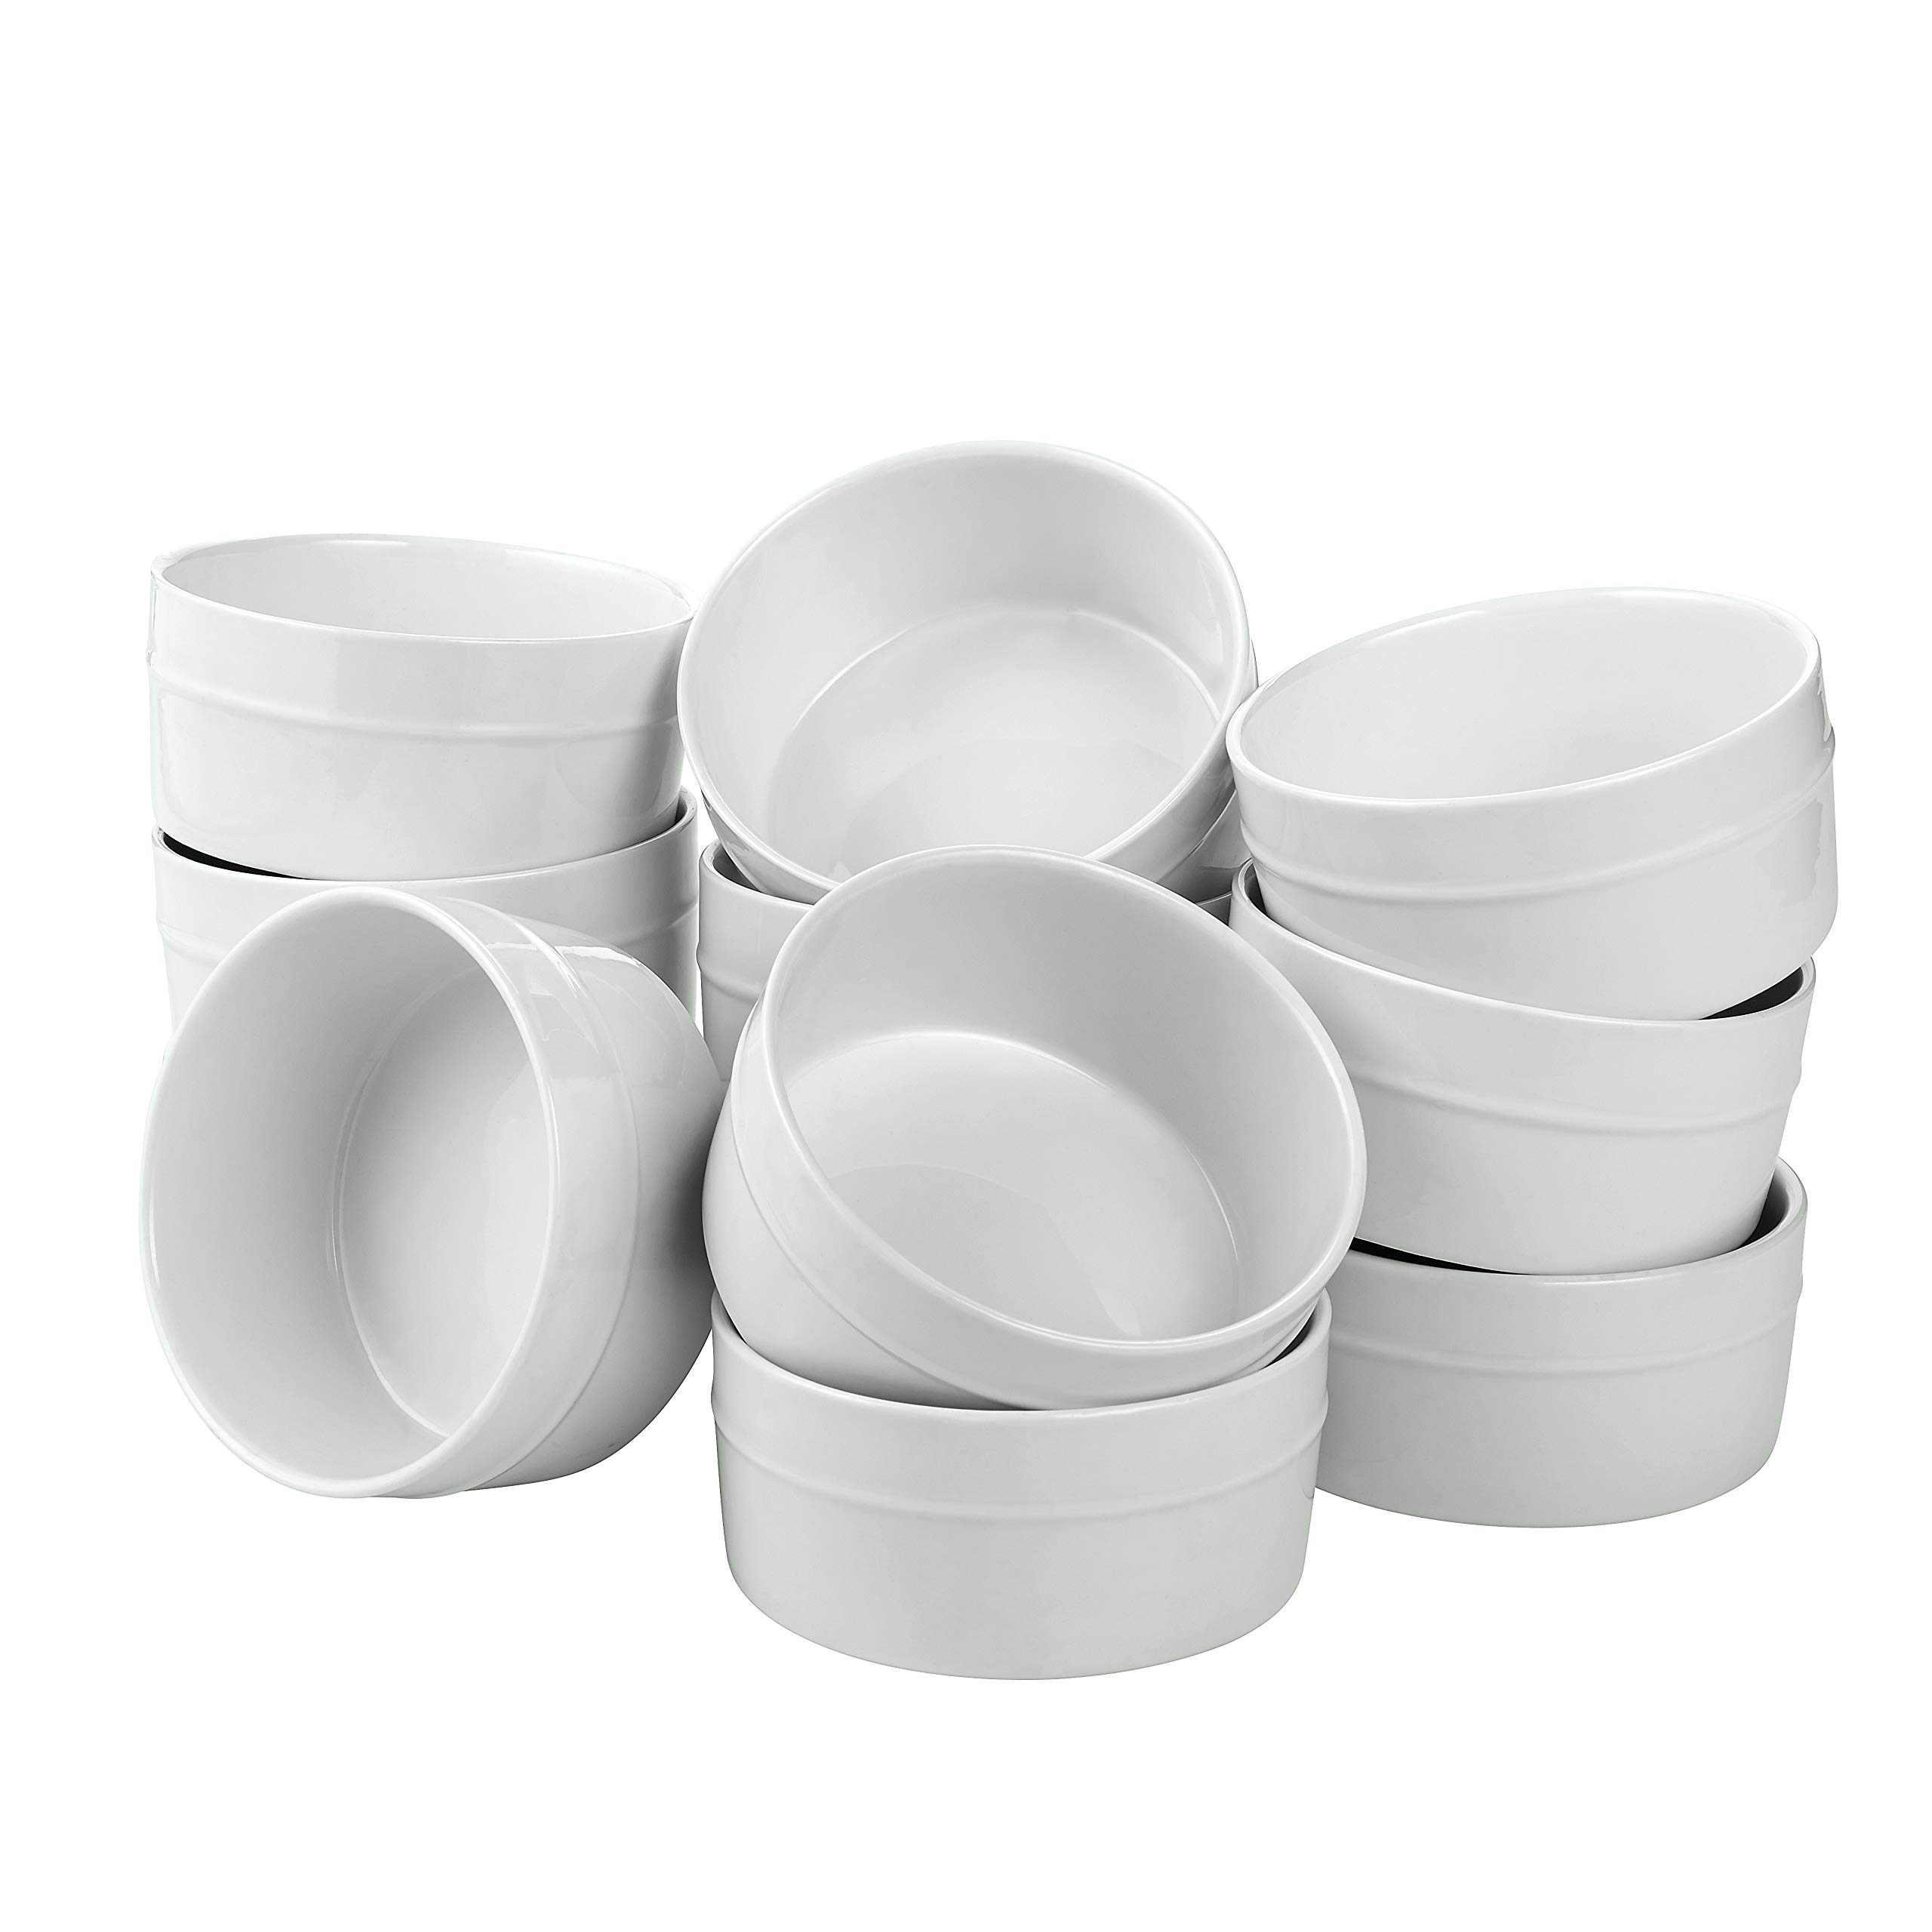 overandback 822324 Set of 12 Round Ramekin, 5'', White